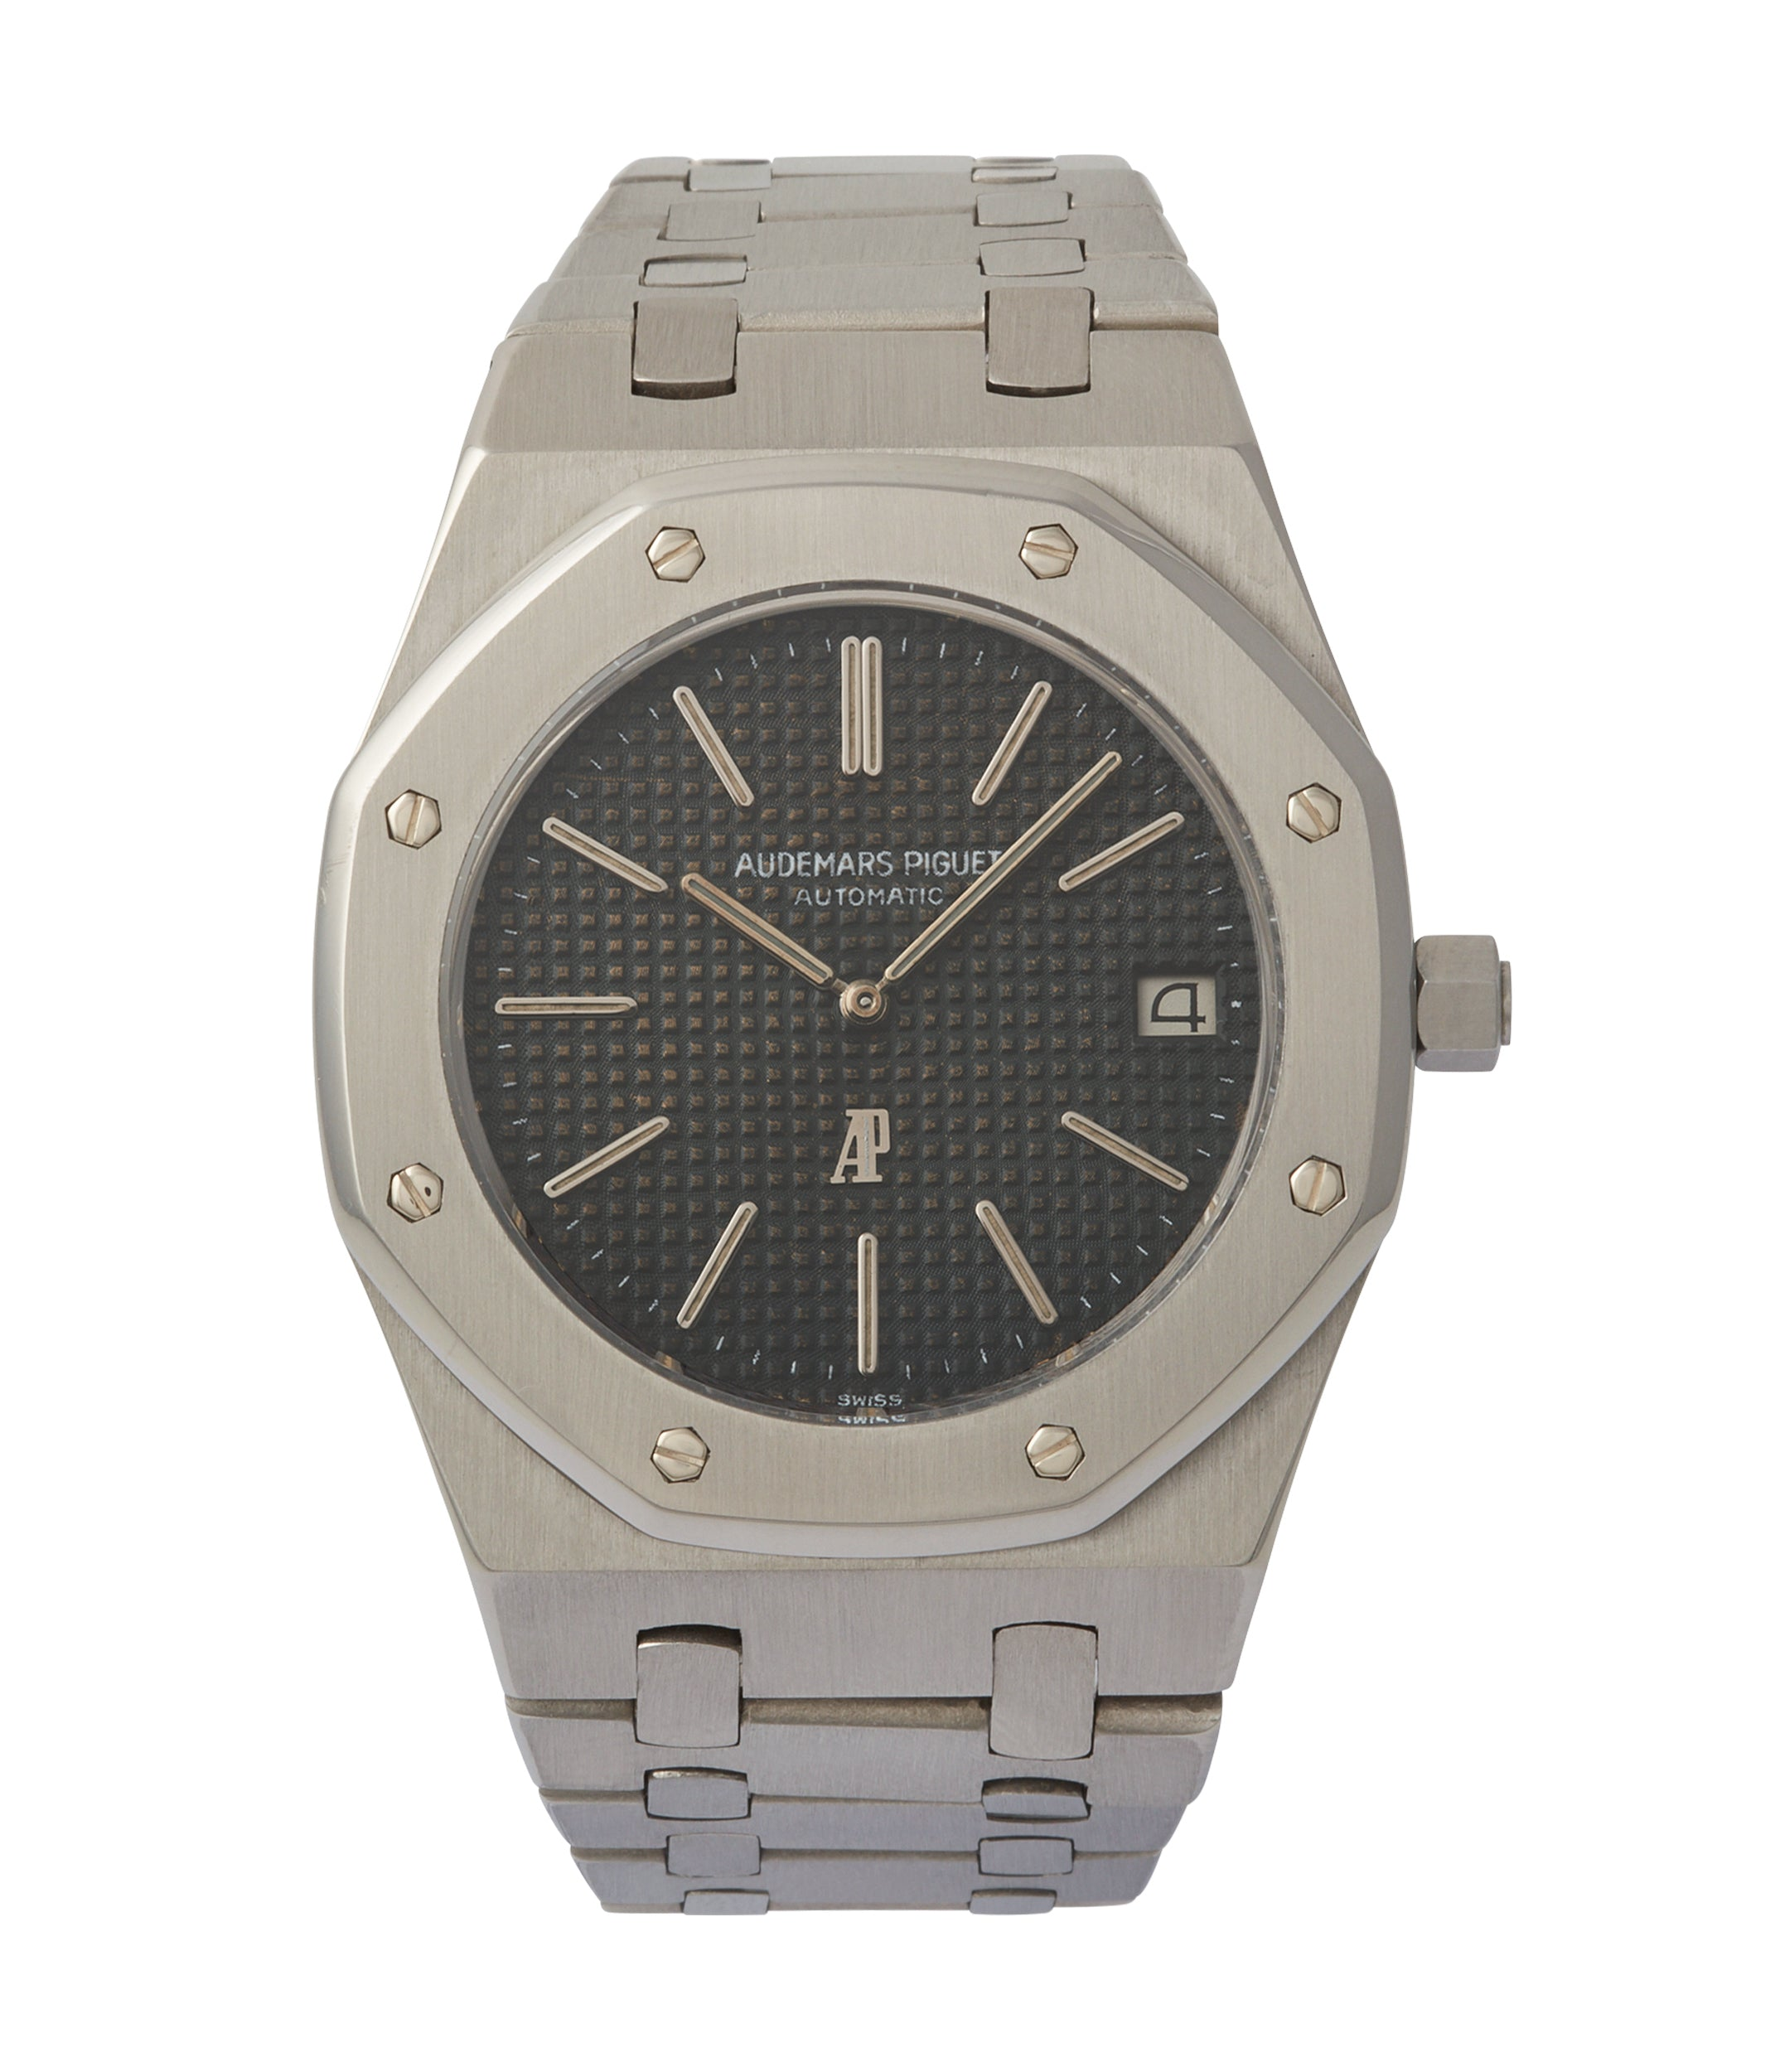 buy Audemars Piguet Royal Oak A-series 5402ST steel vintage